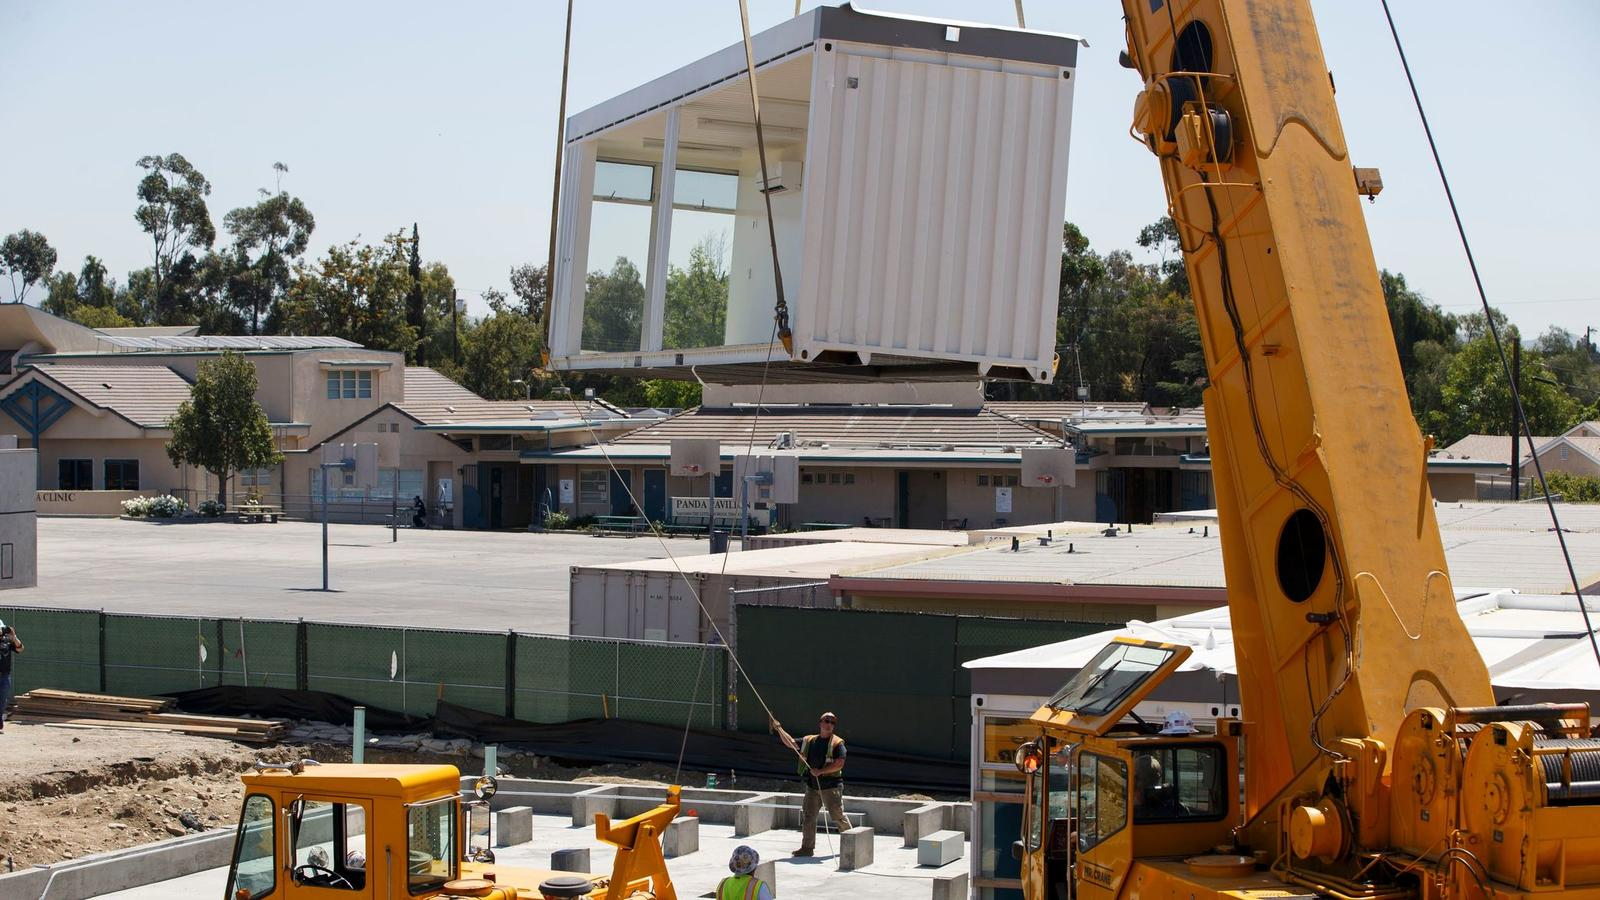 Construction workers use a crane to lift prefabricated classroom sections made of recycled shipping containers into position at Vaughn Next Century Learning Center. (Patrick T. Fallon / For The Times)